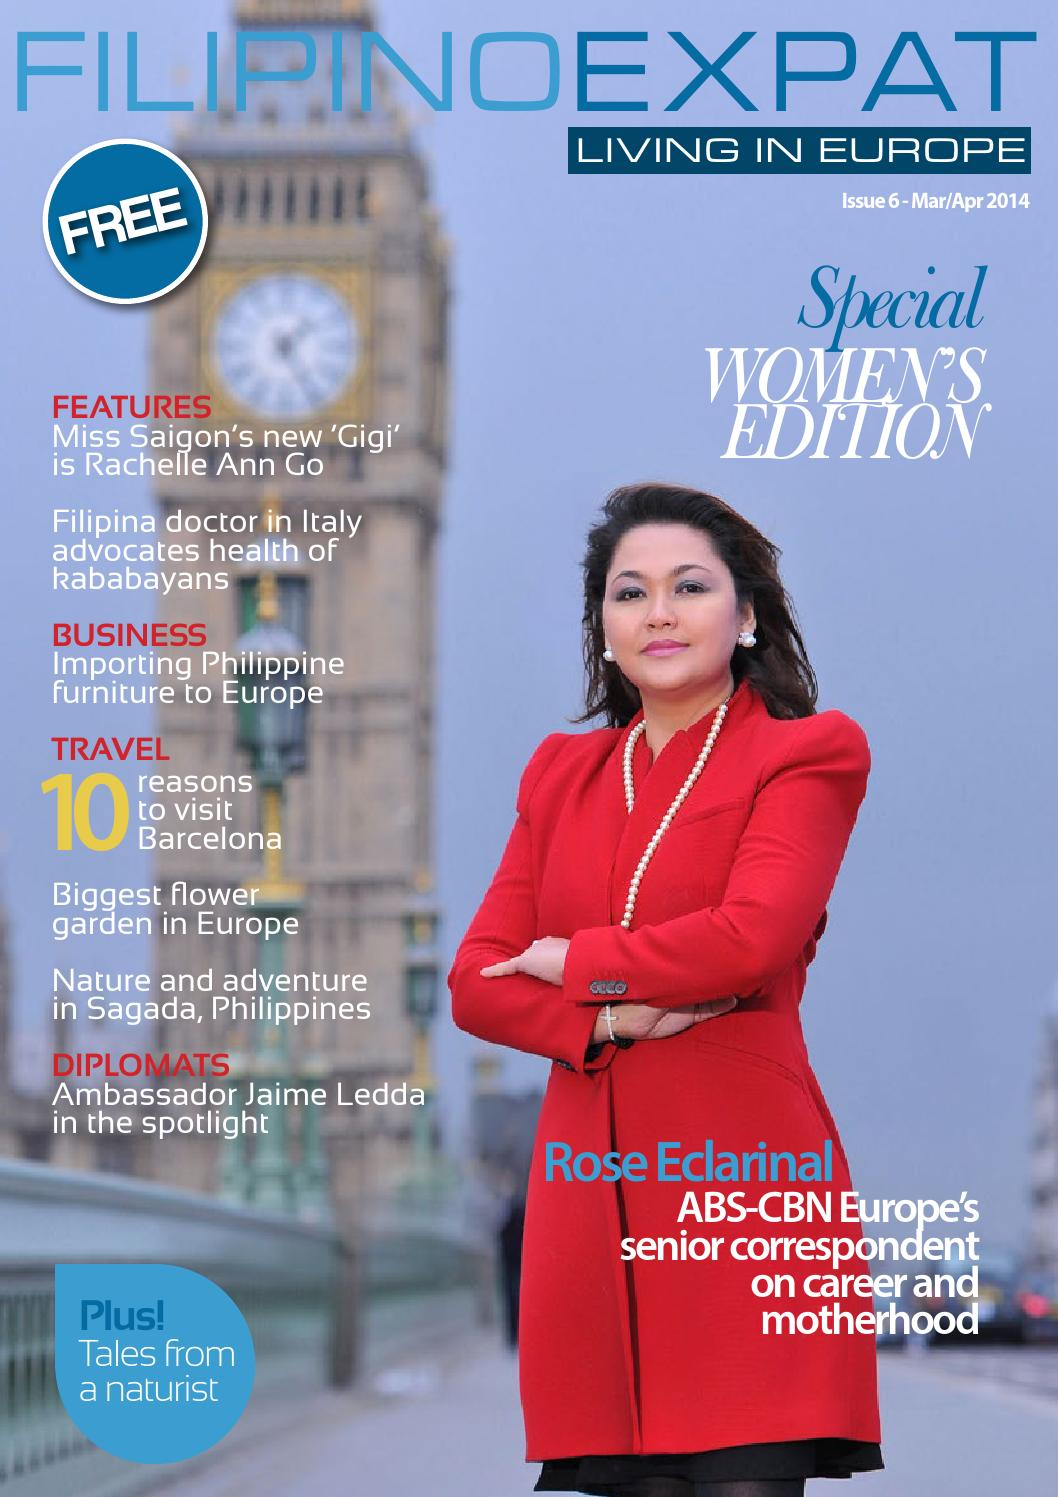 Issue 6 Special Women's Edition